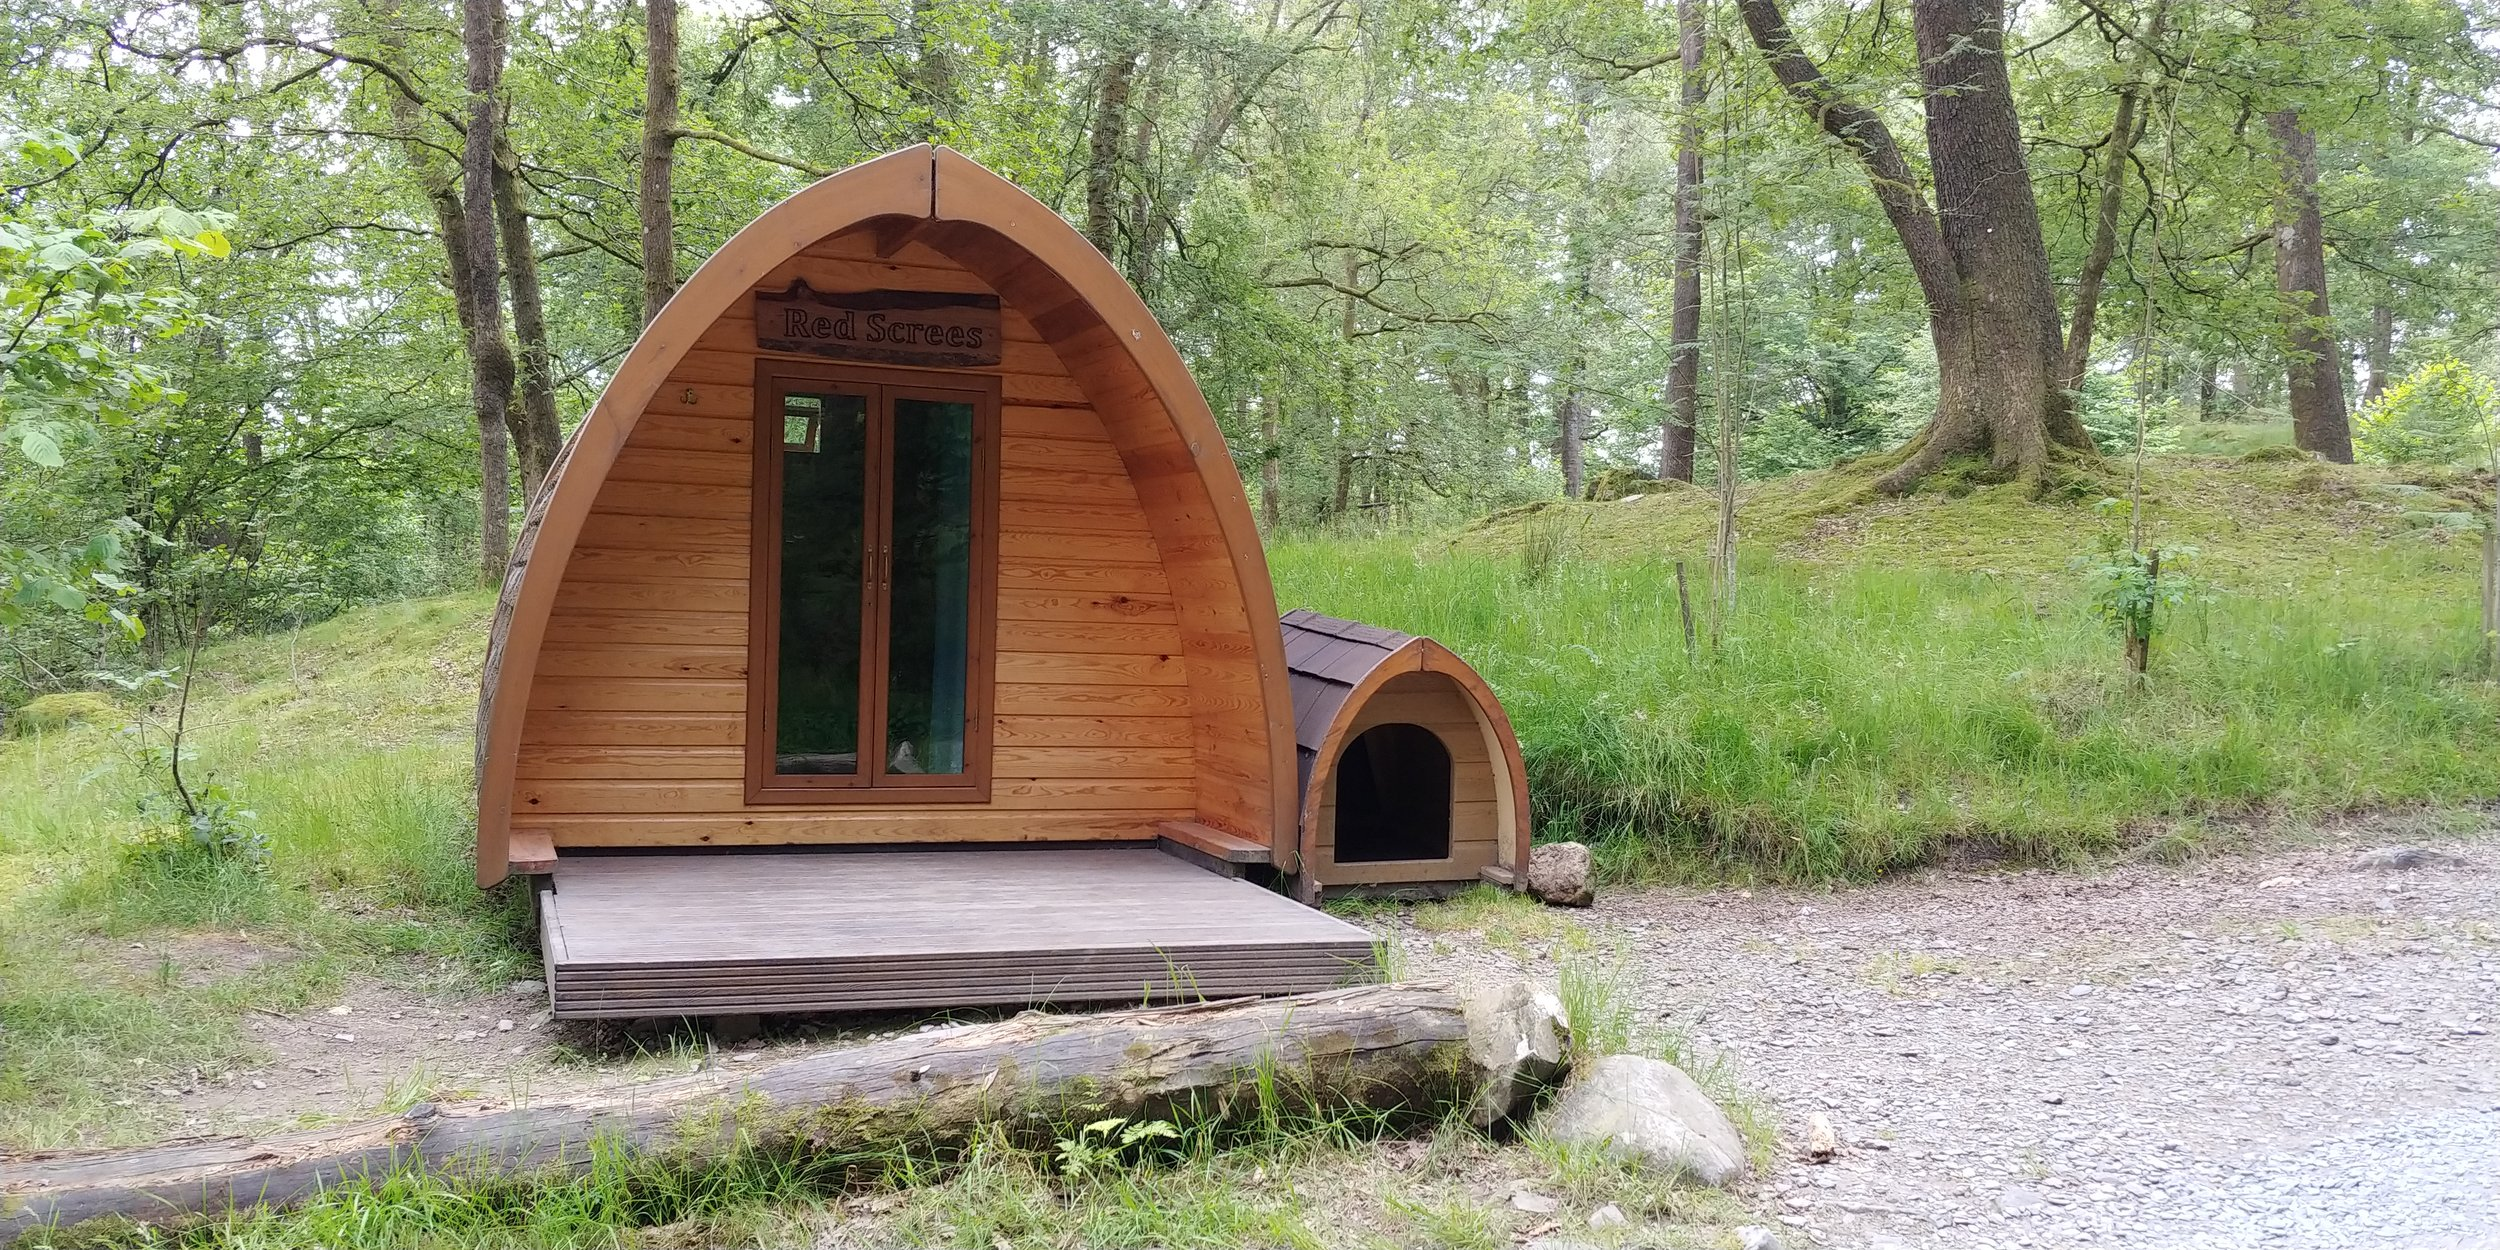 Hobbit pods, with kennels for hobbit doggies.